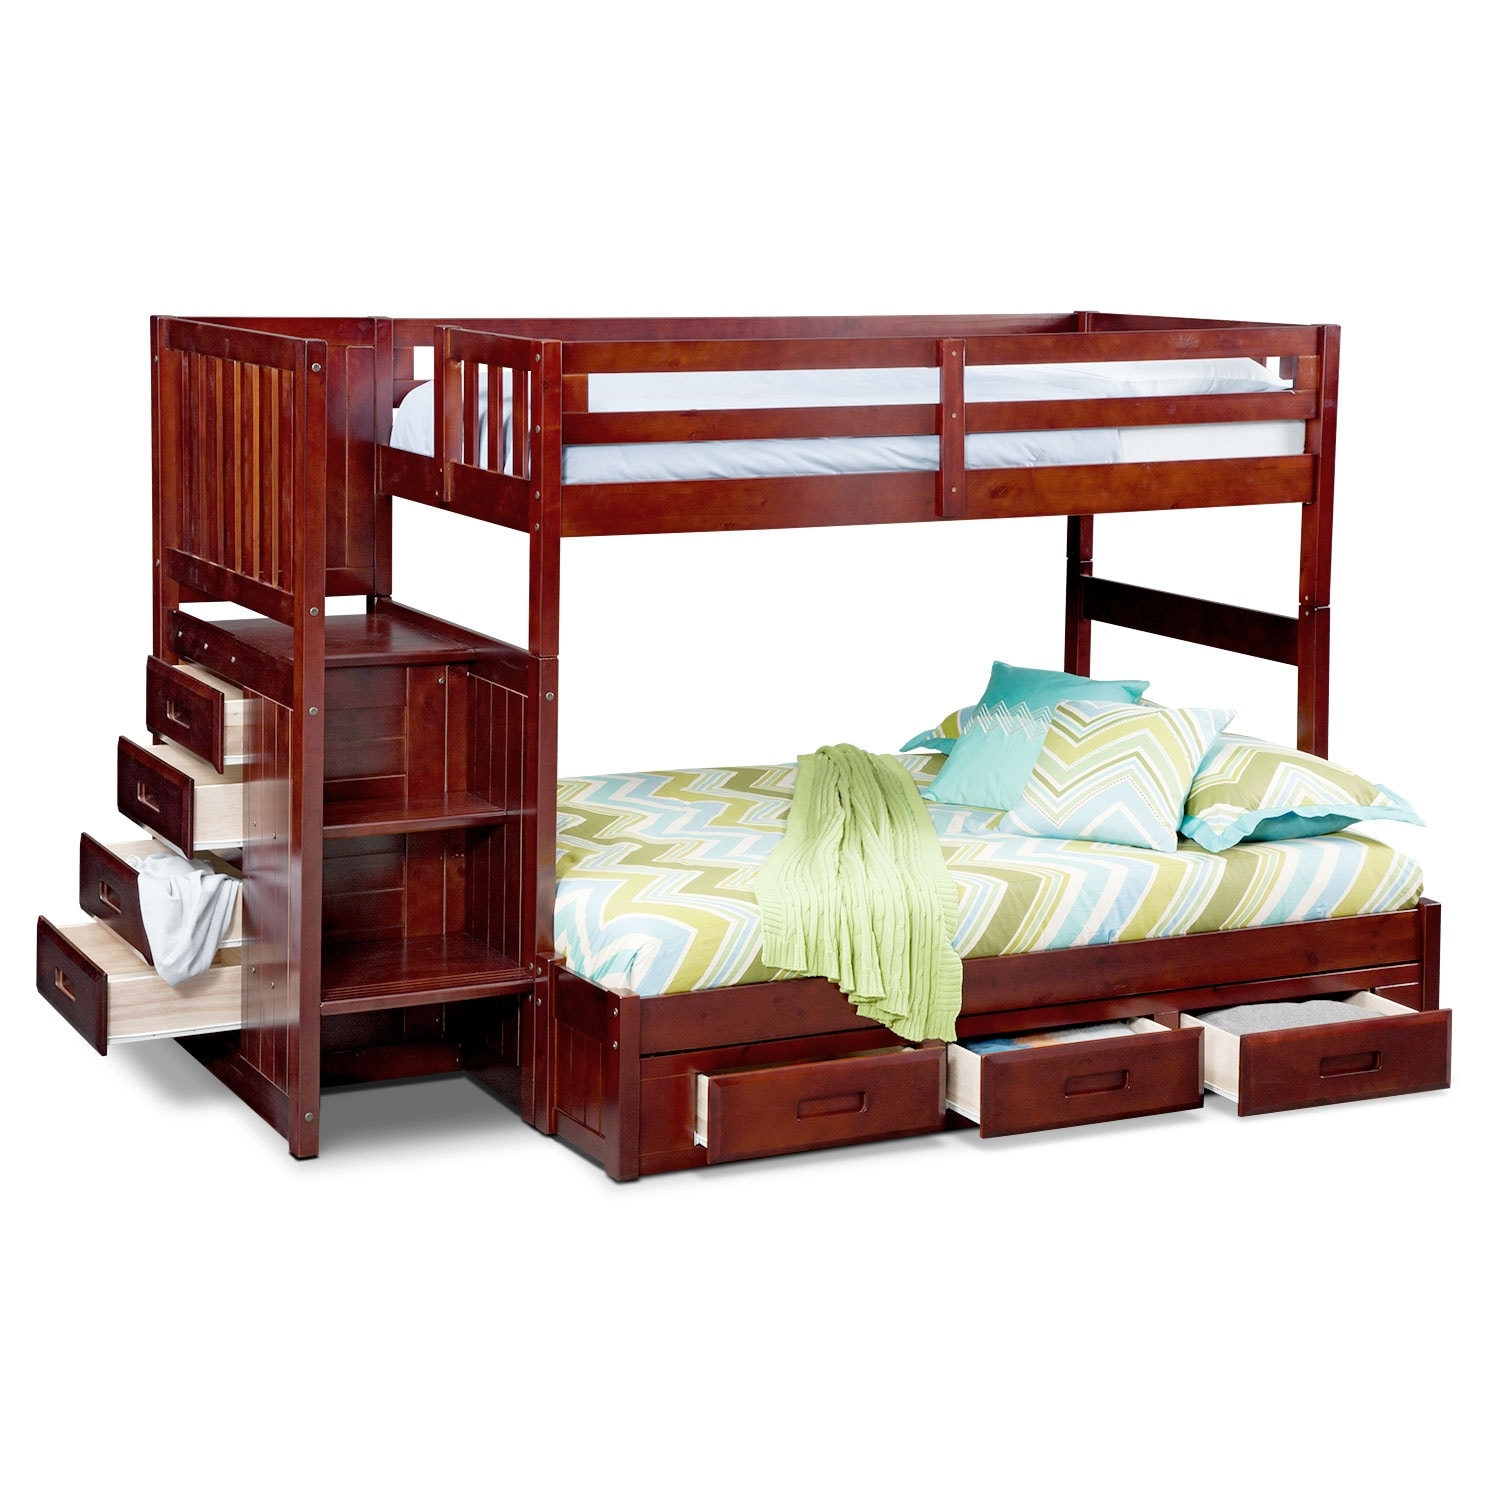 Ranger merlot twin full bunk bed with stairs and 7 drawer storage american signature furniture - Bunk bed with drawer steps ...